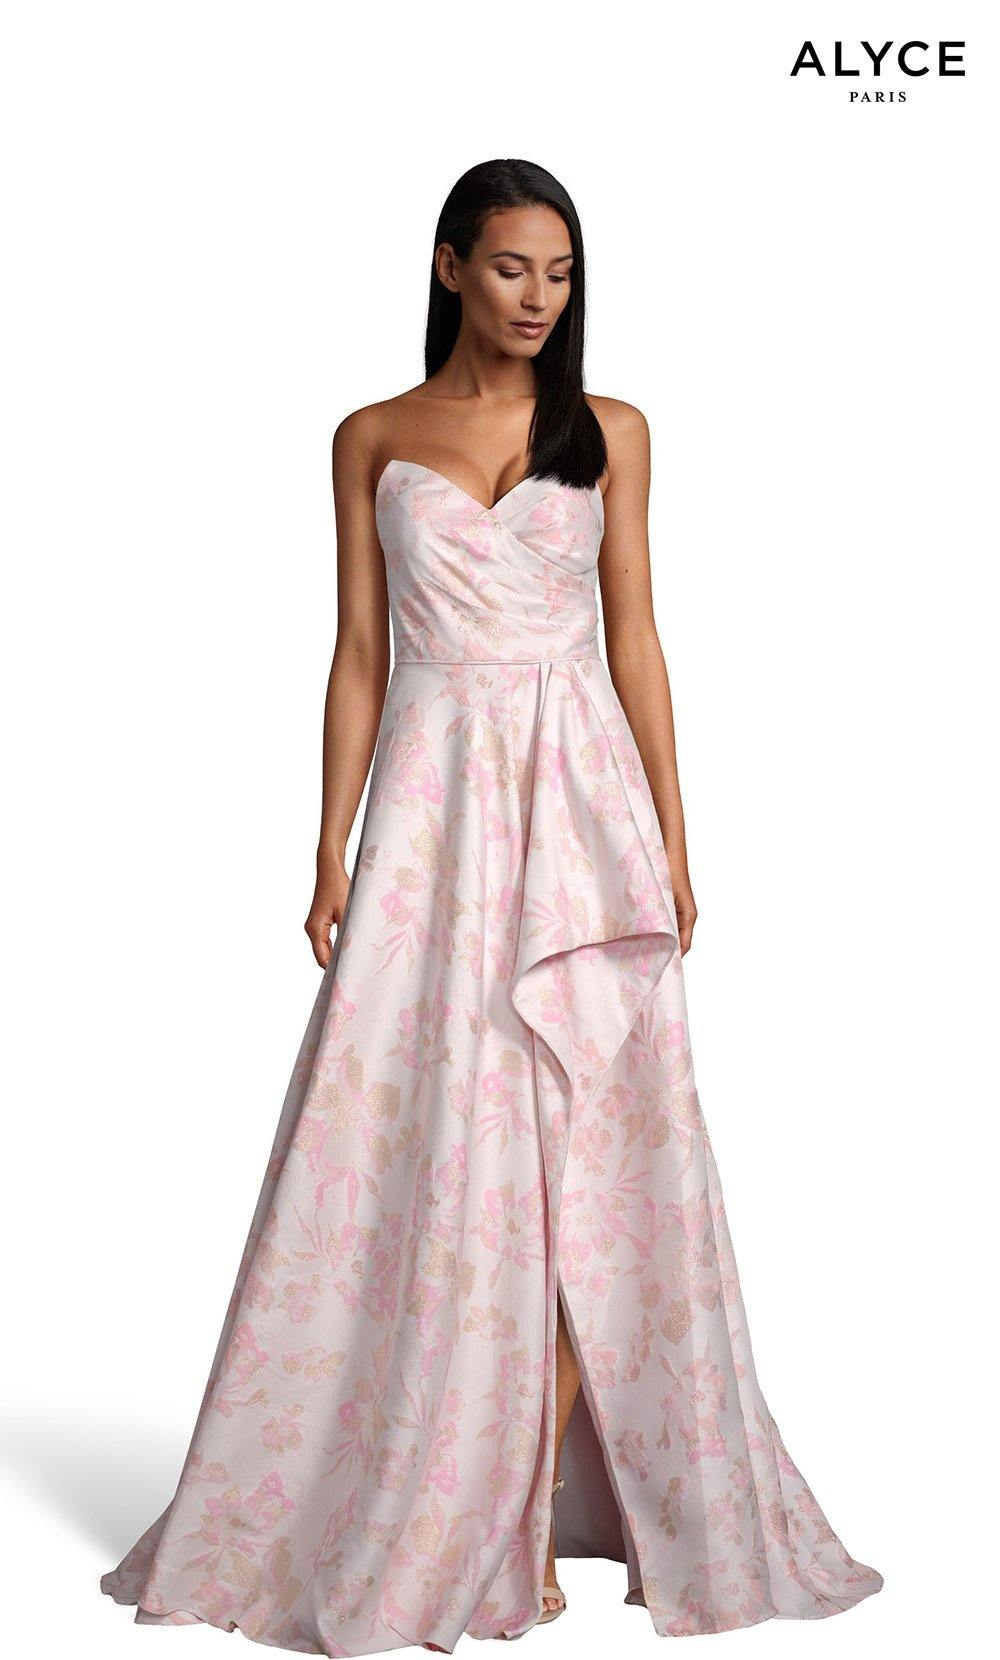 Pink strapless floral gown with a high slit and pockets